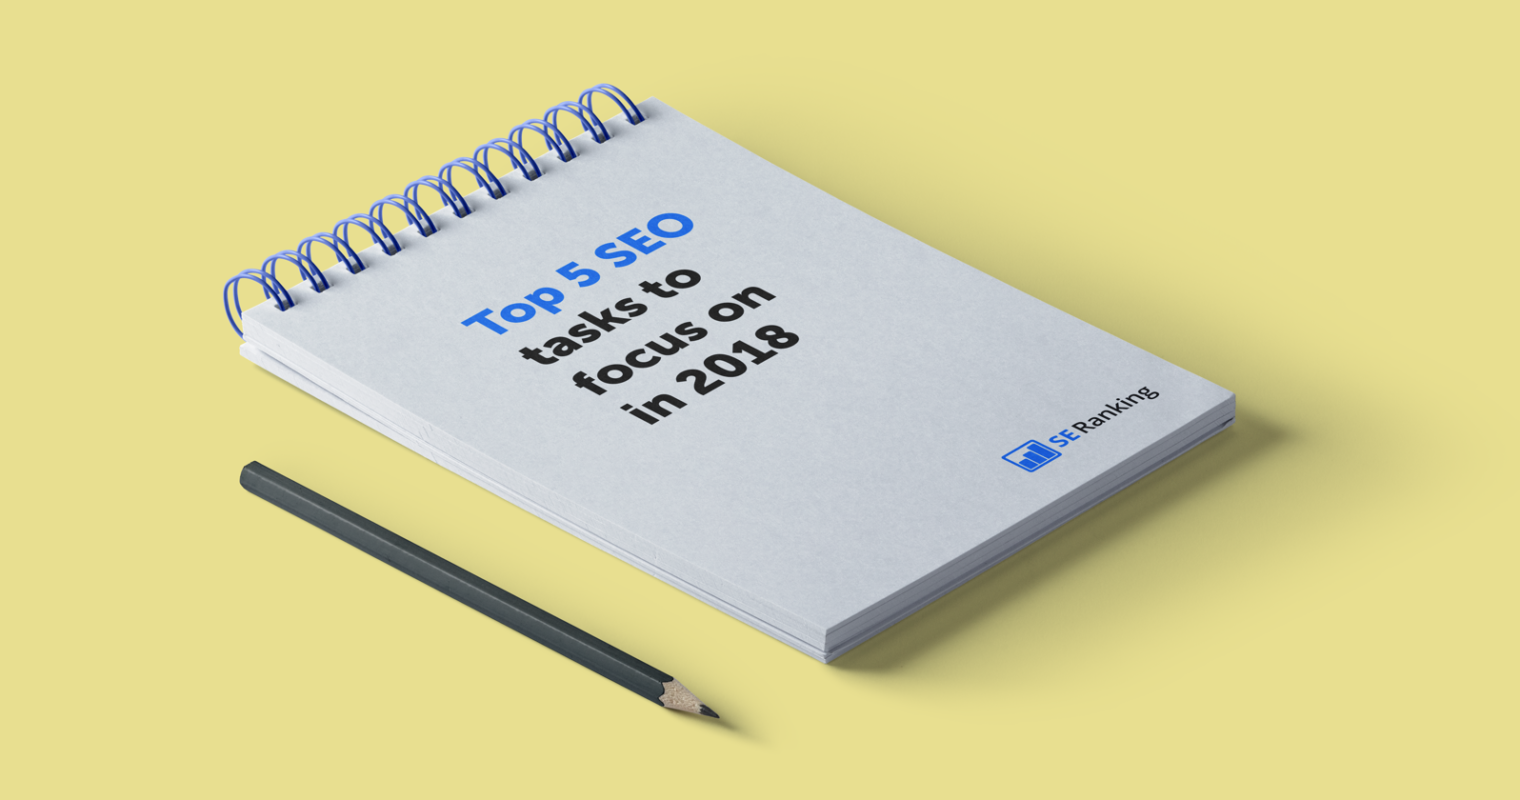 Top 5 SEO Tasks to Focus on in 2018